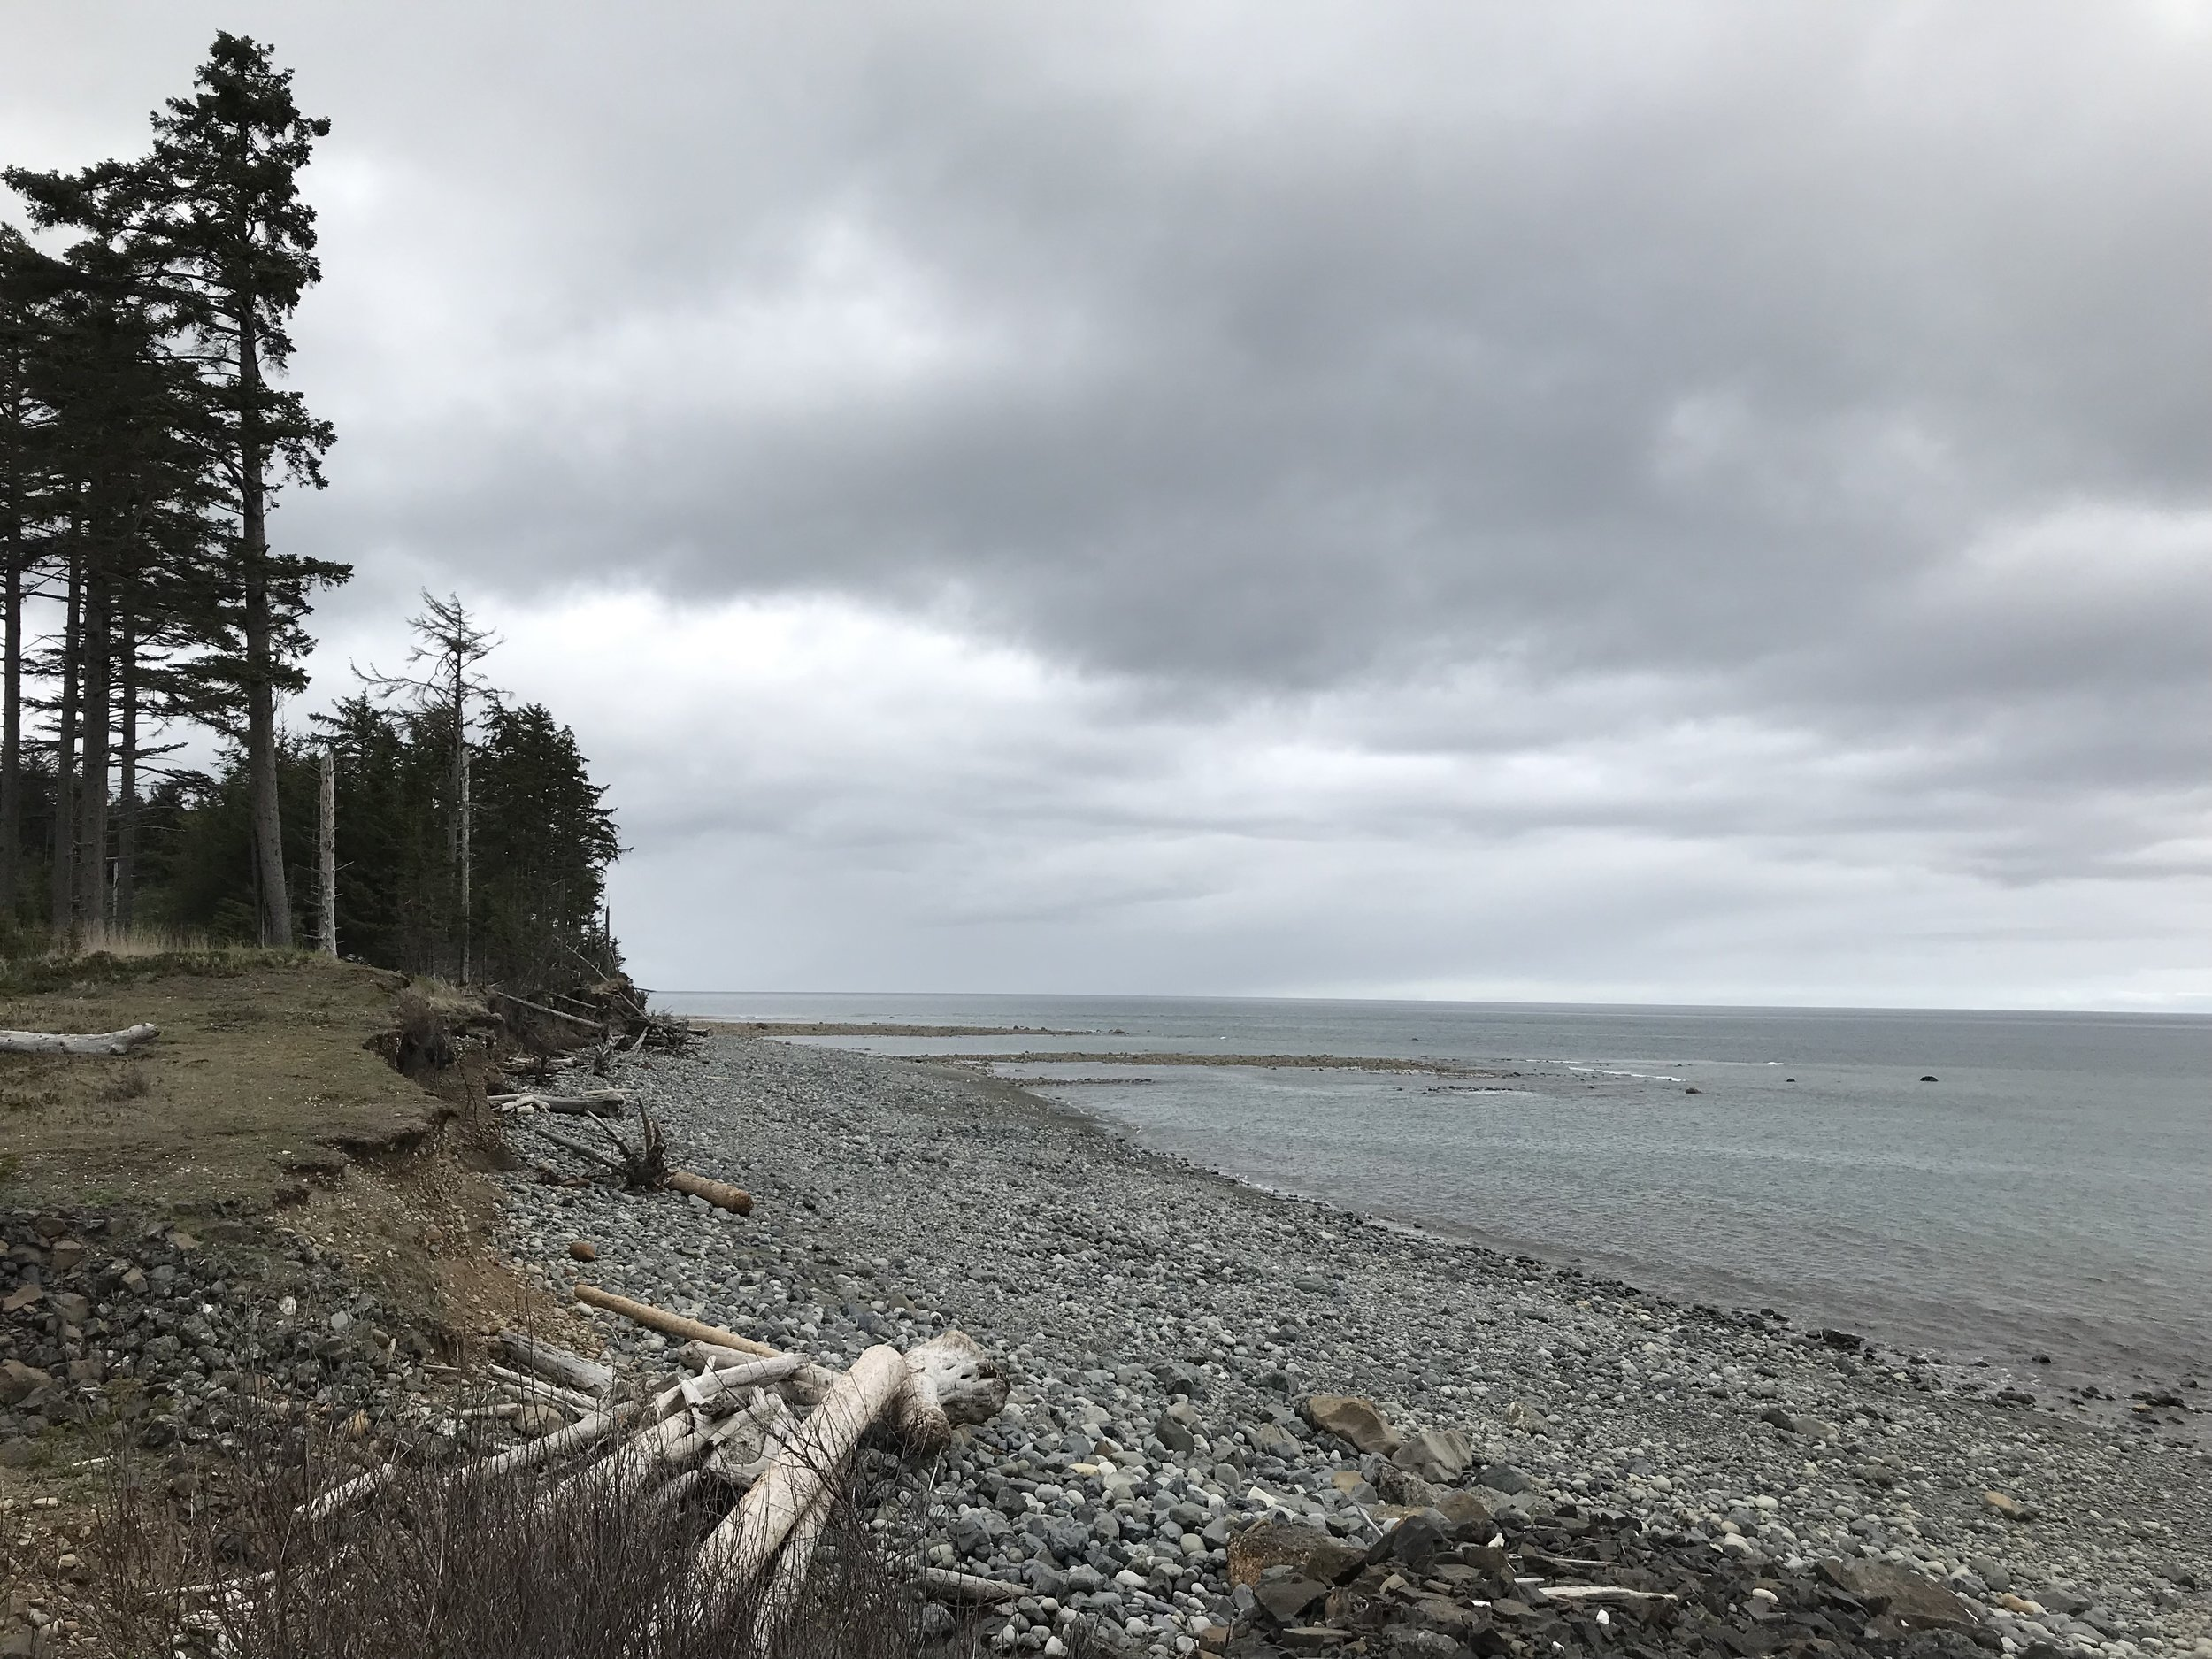 Hecate Strait looking north